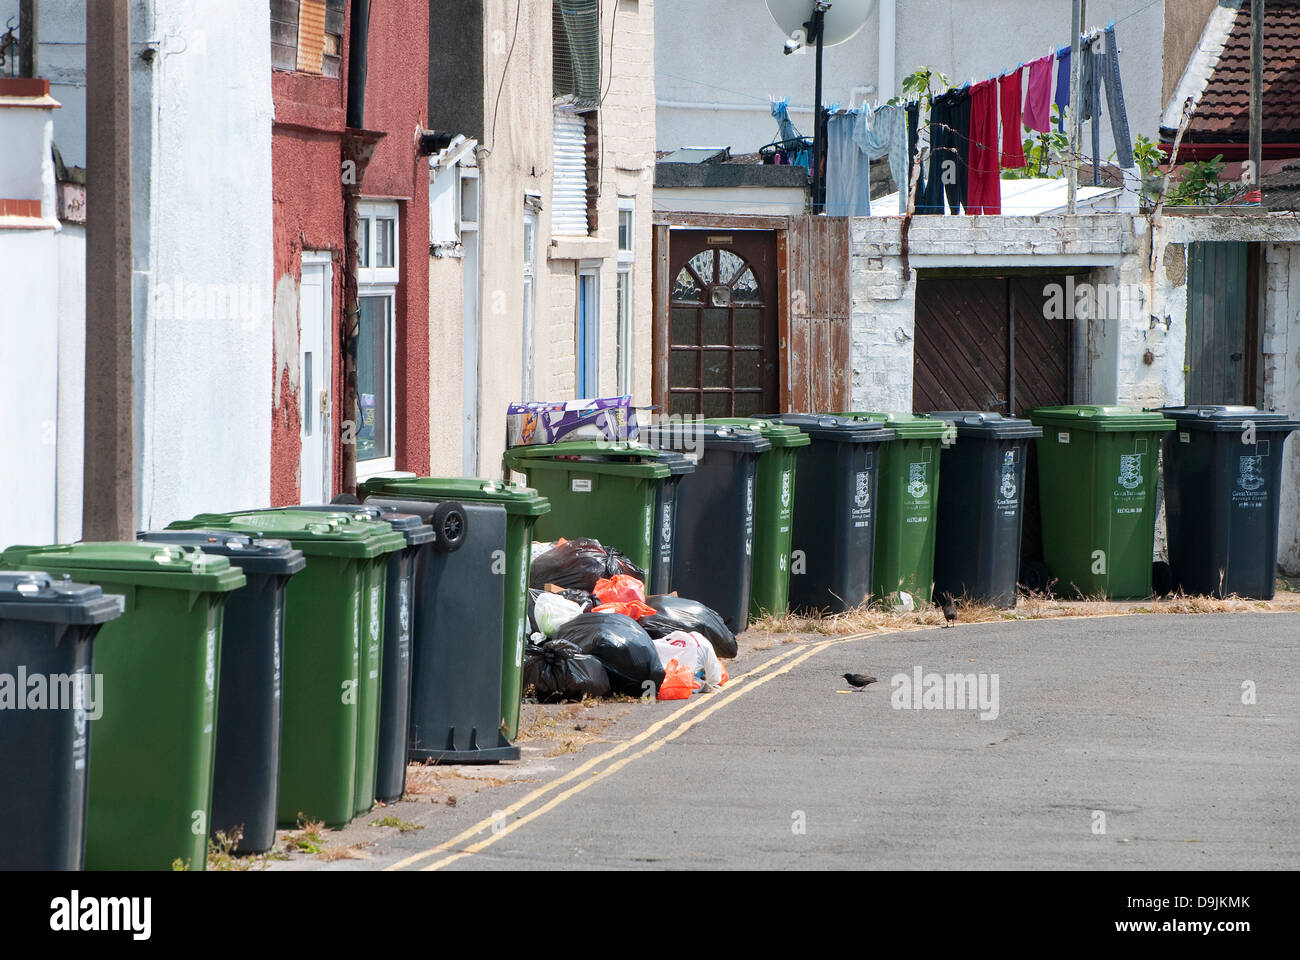 urban decay in great yarmouth, norfolk, england - Stock Image